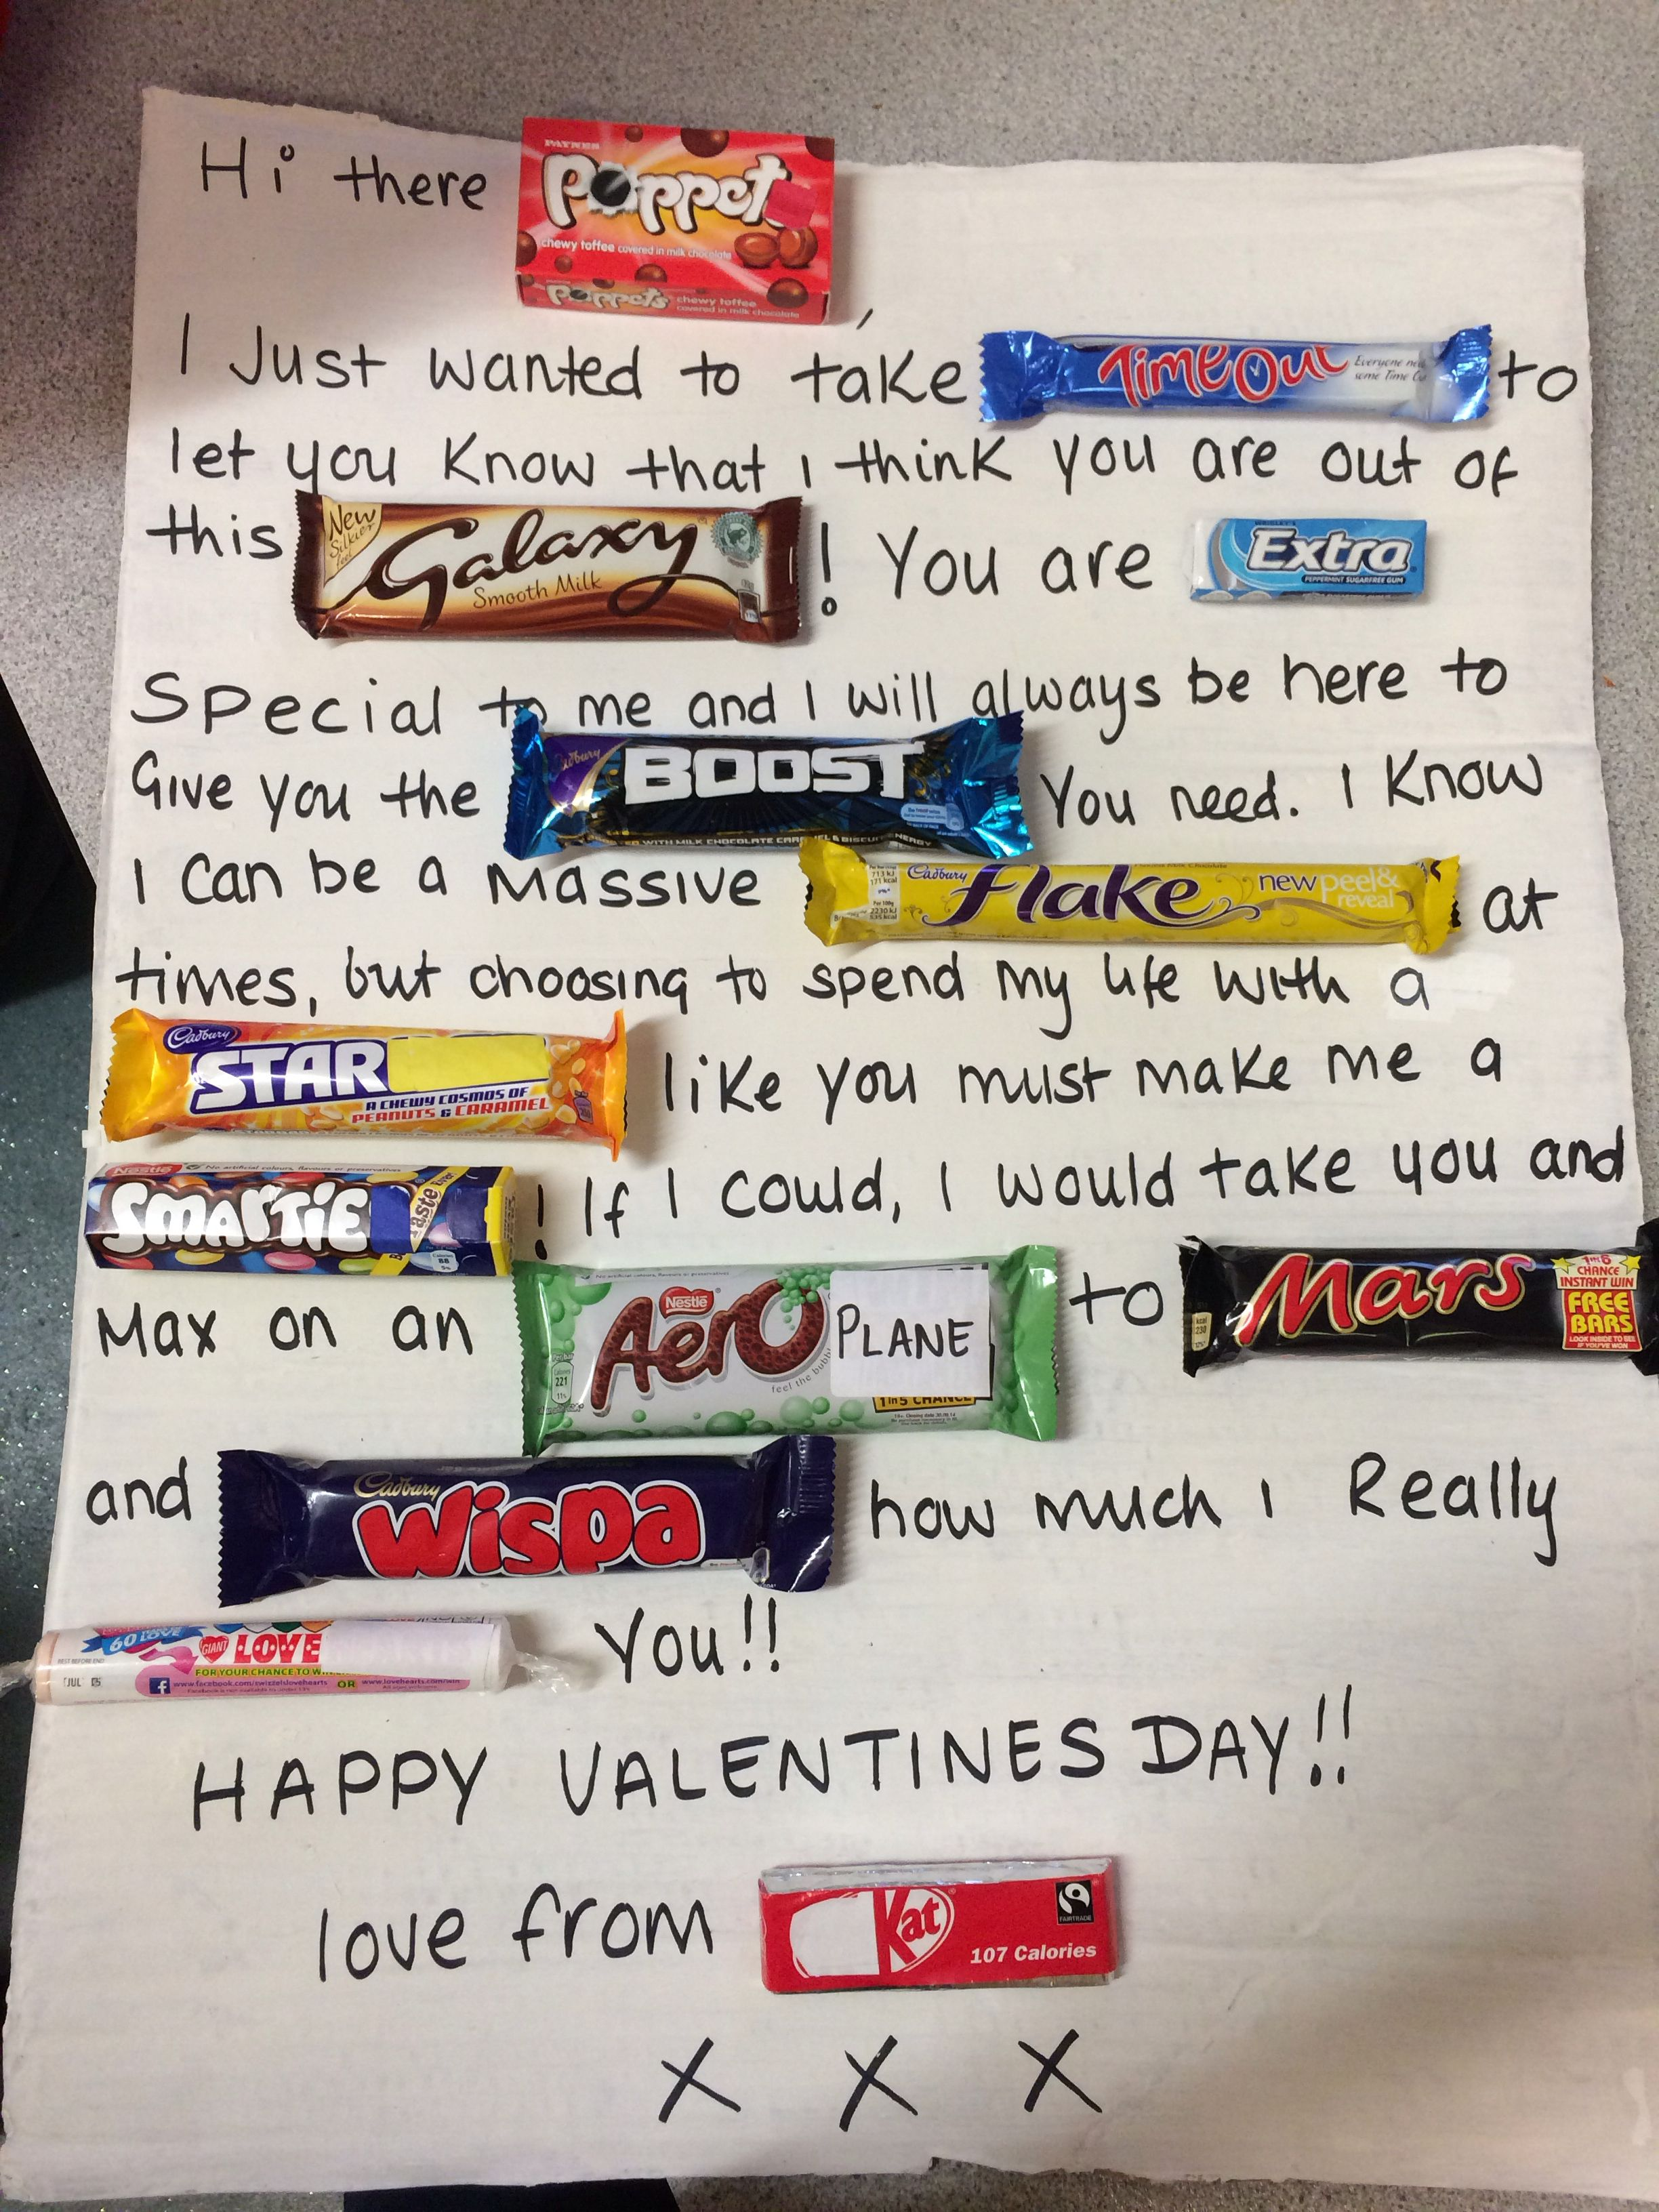 my chocolate bar valentines card to my man